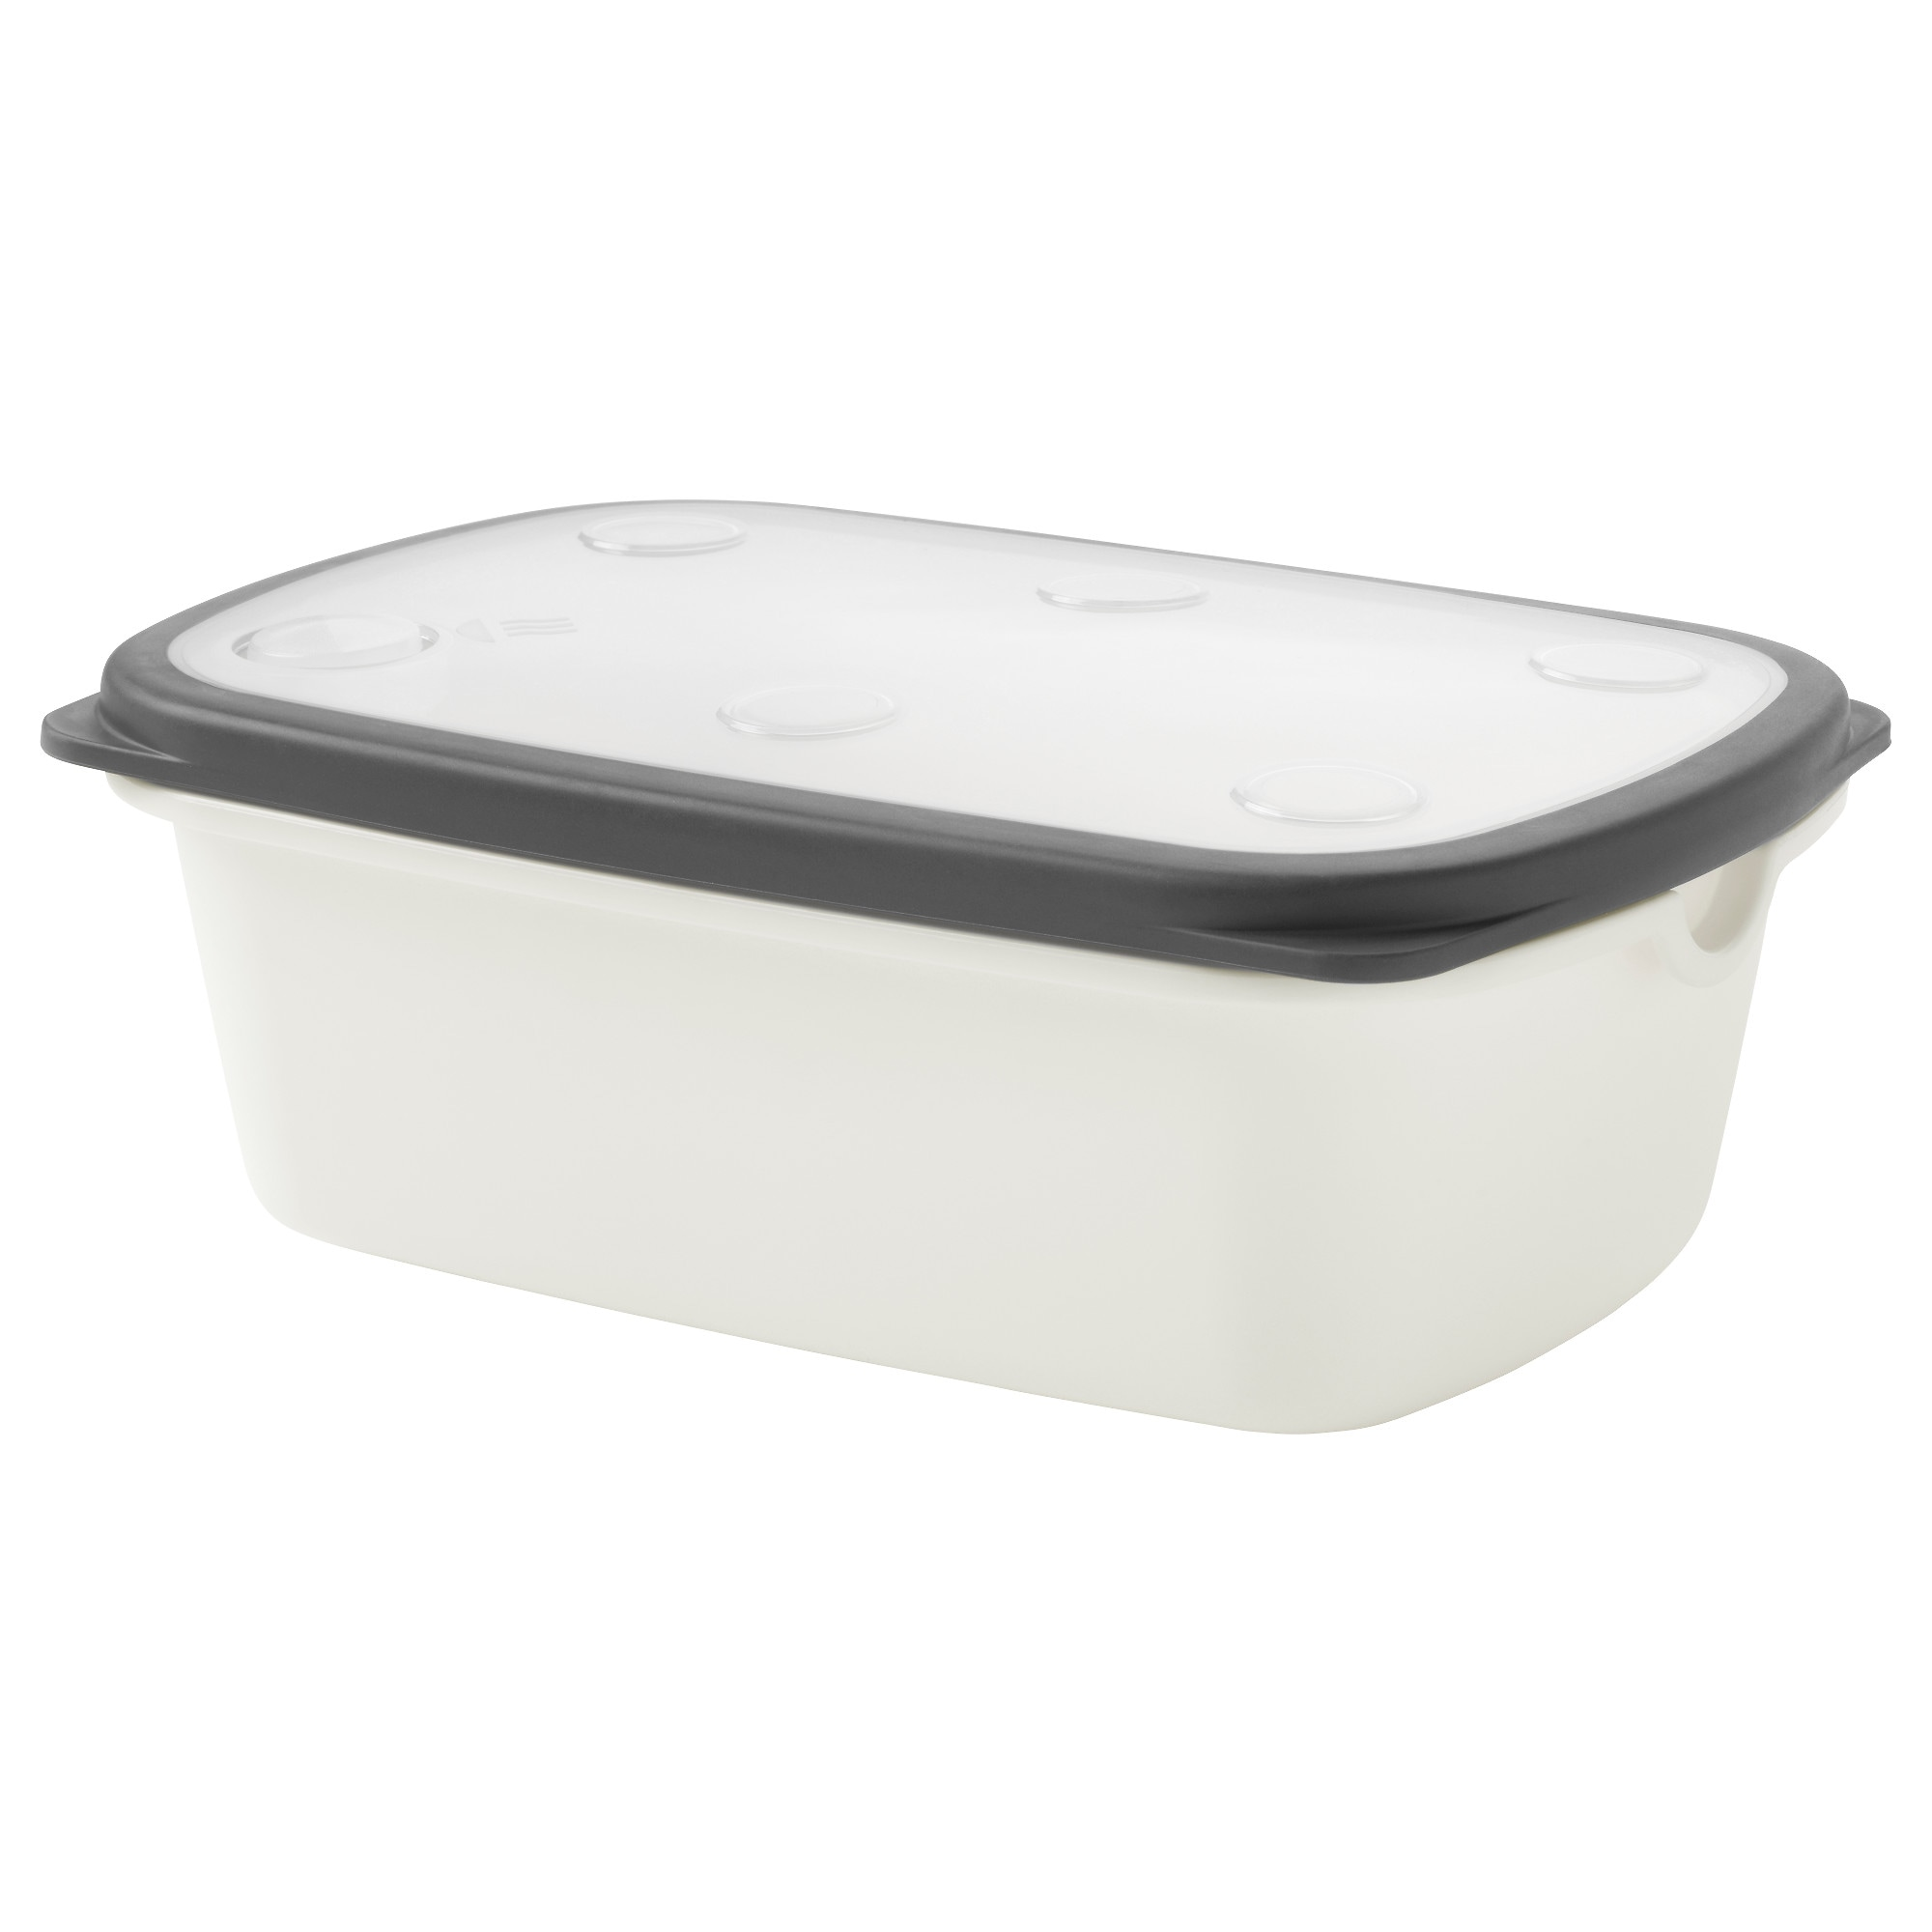 Ikea 365 Food Container White Gray Length 9 ¾ Width 6